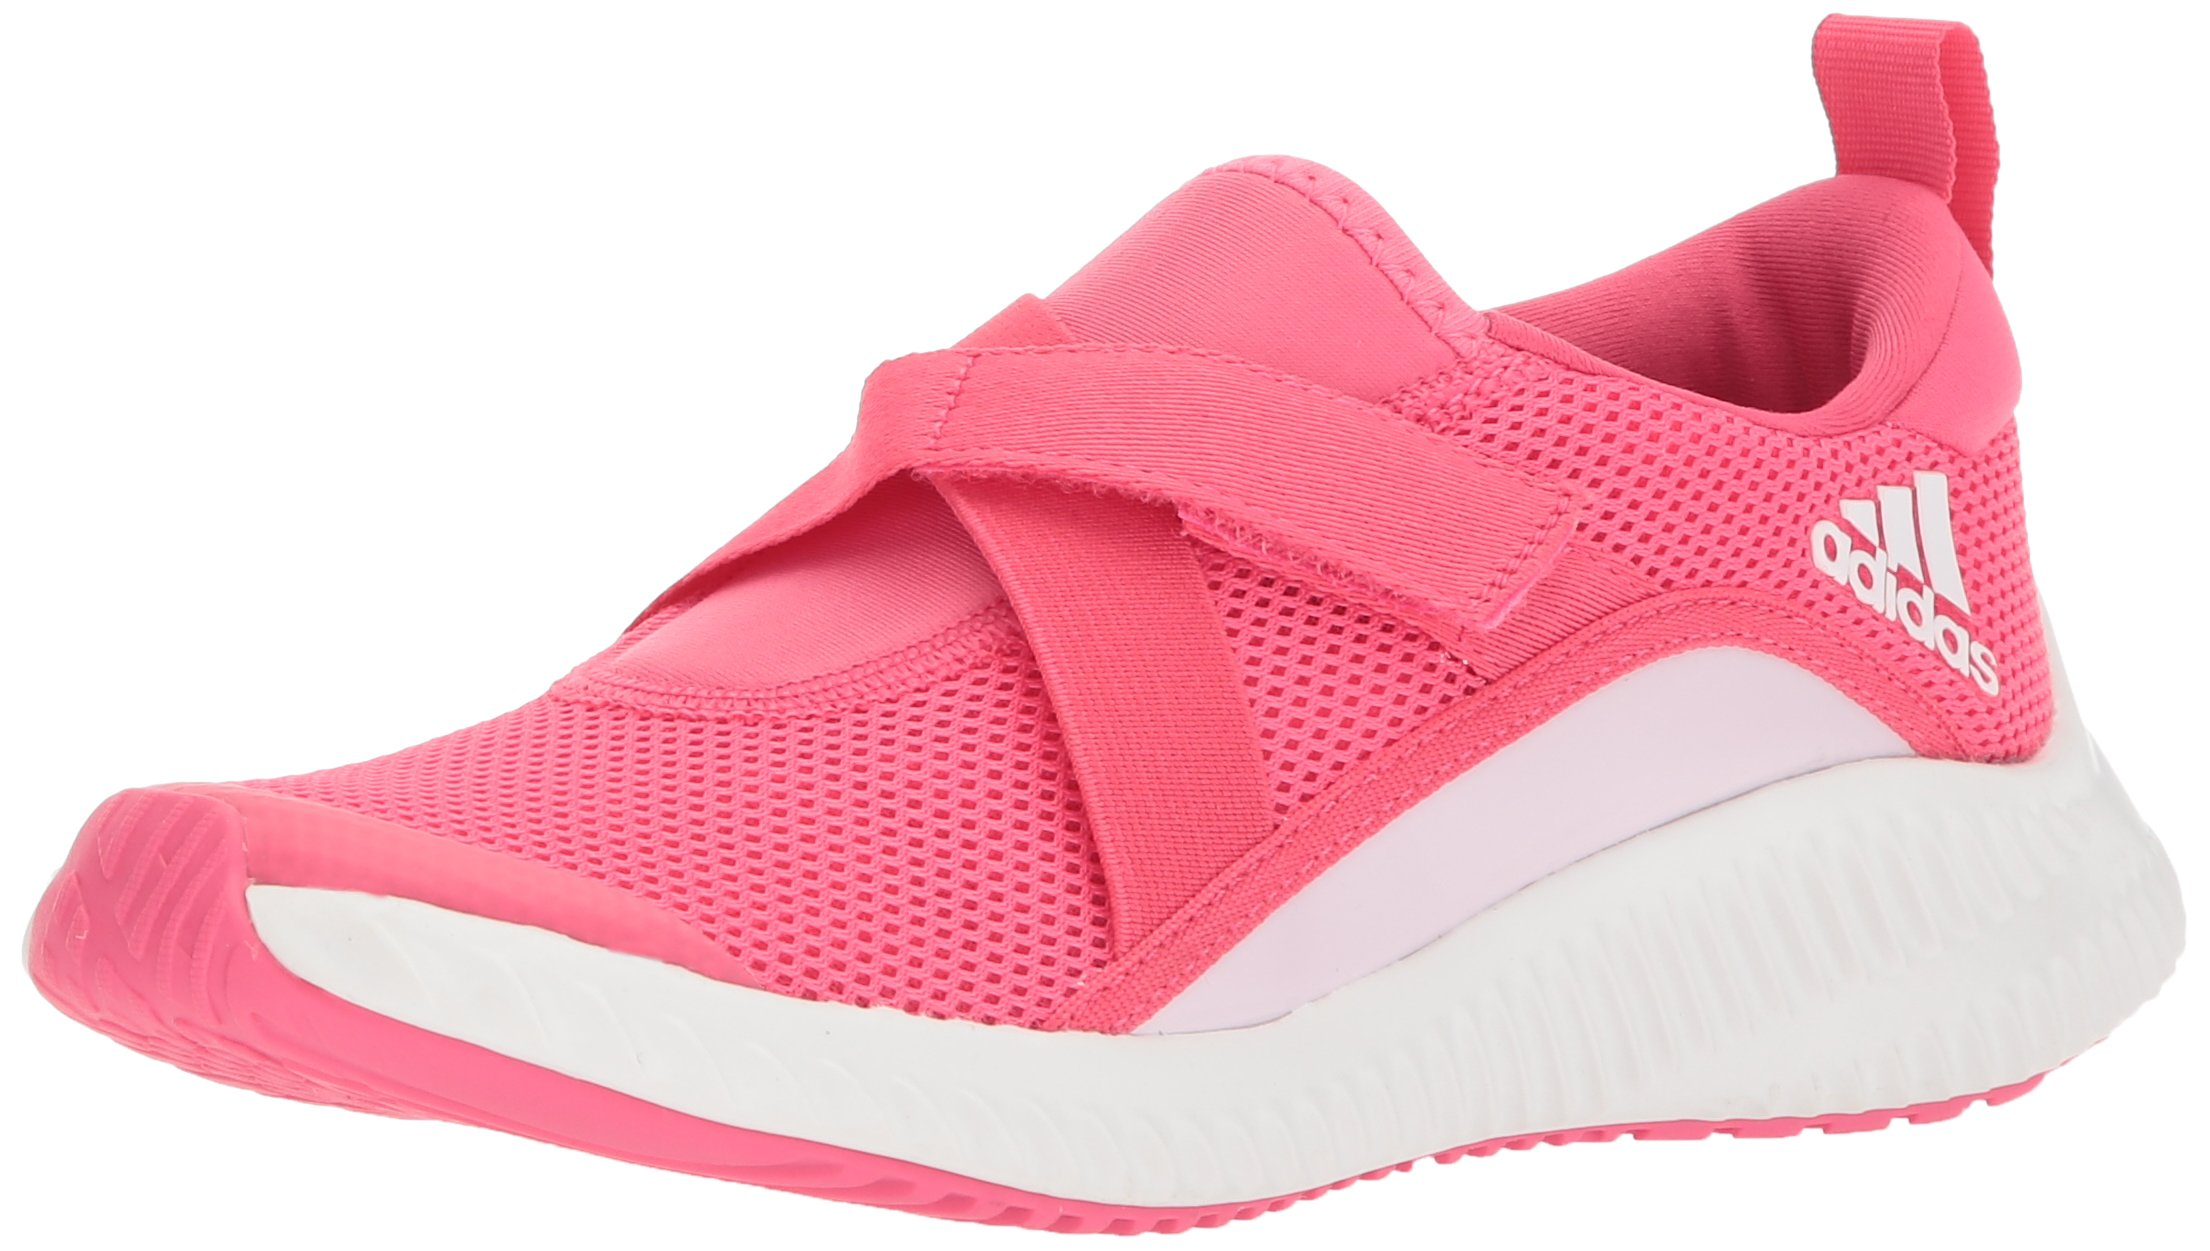 adidas Girls' Fortarun, Chalk Blue/Aero Pink/White, 10.5 M US Little Kid